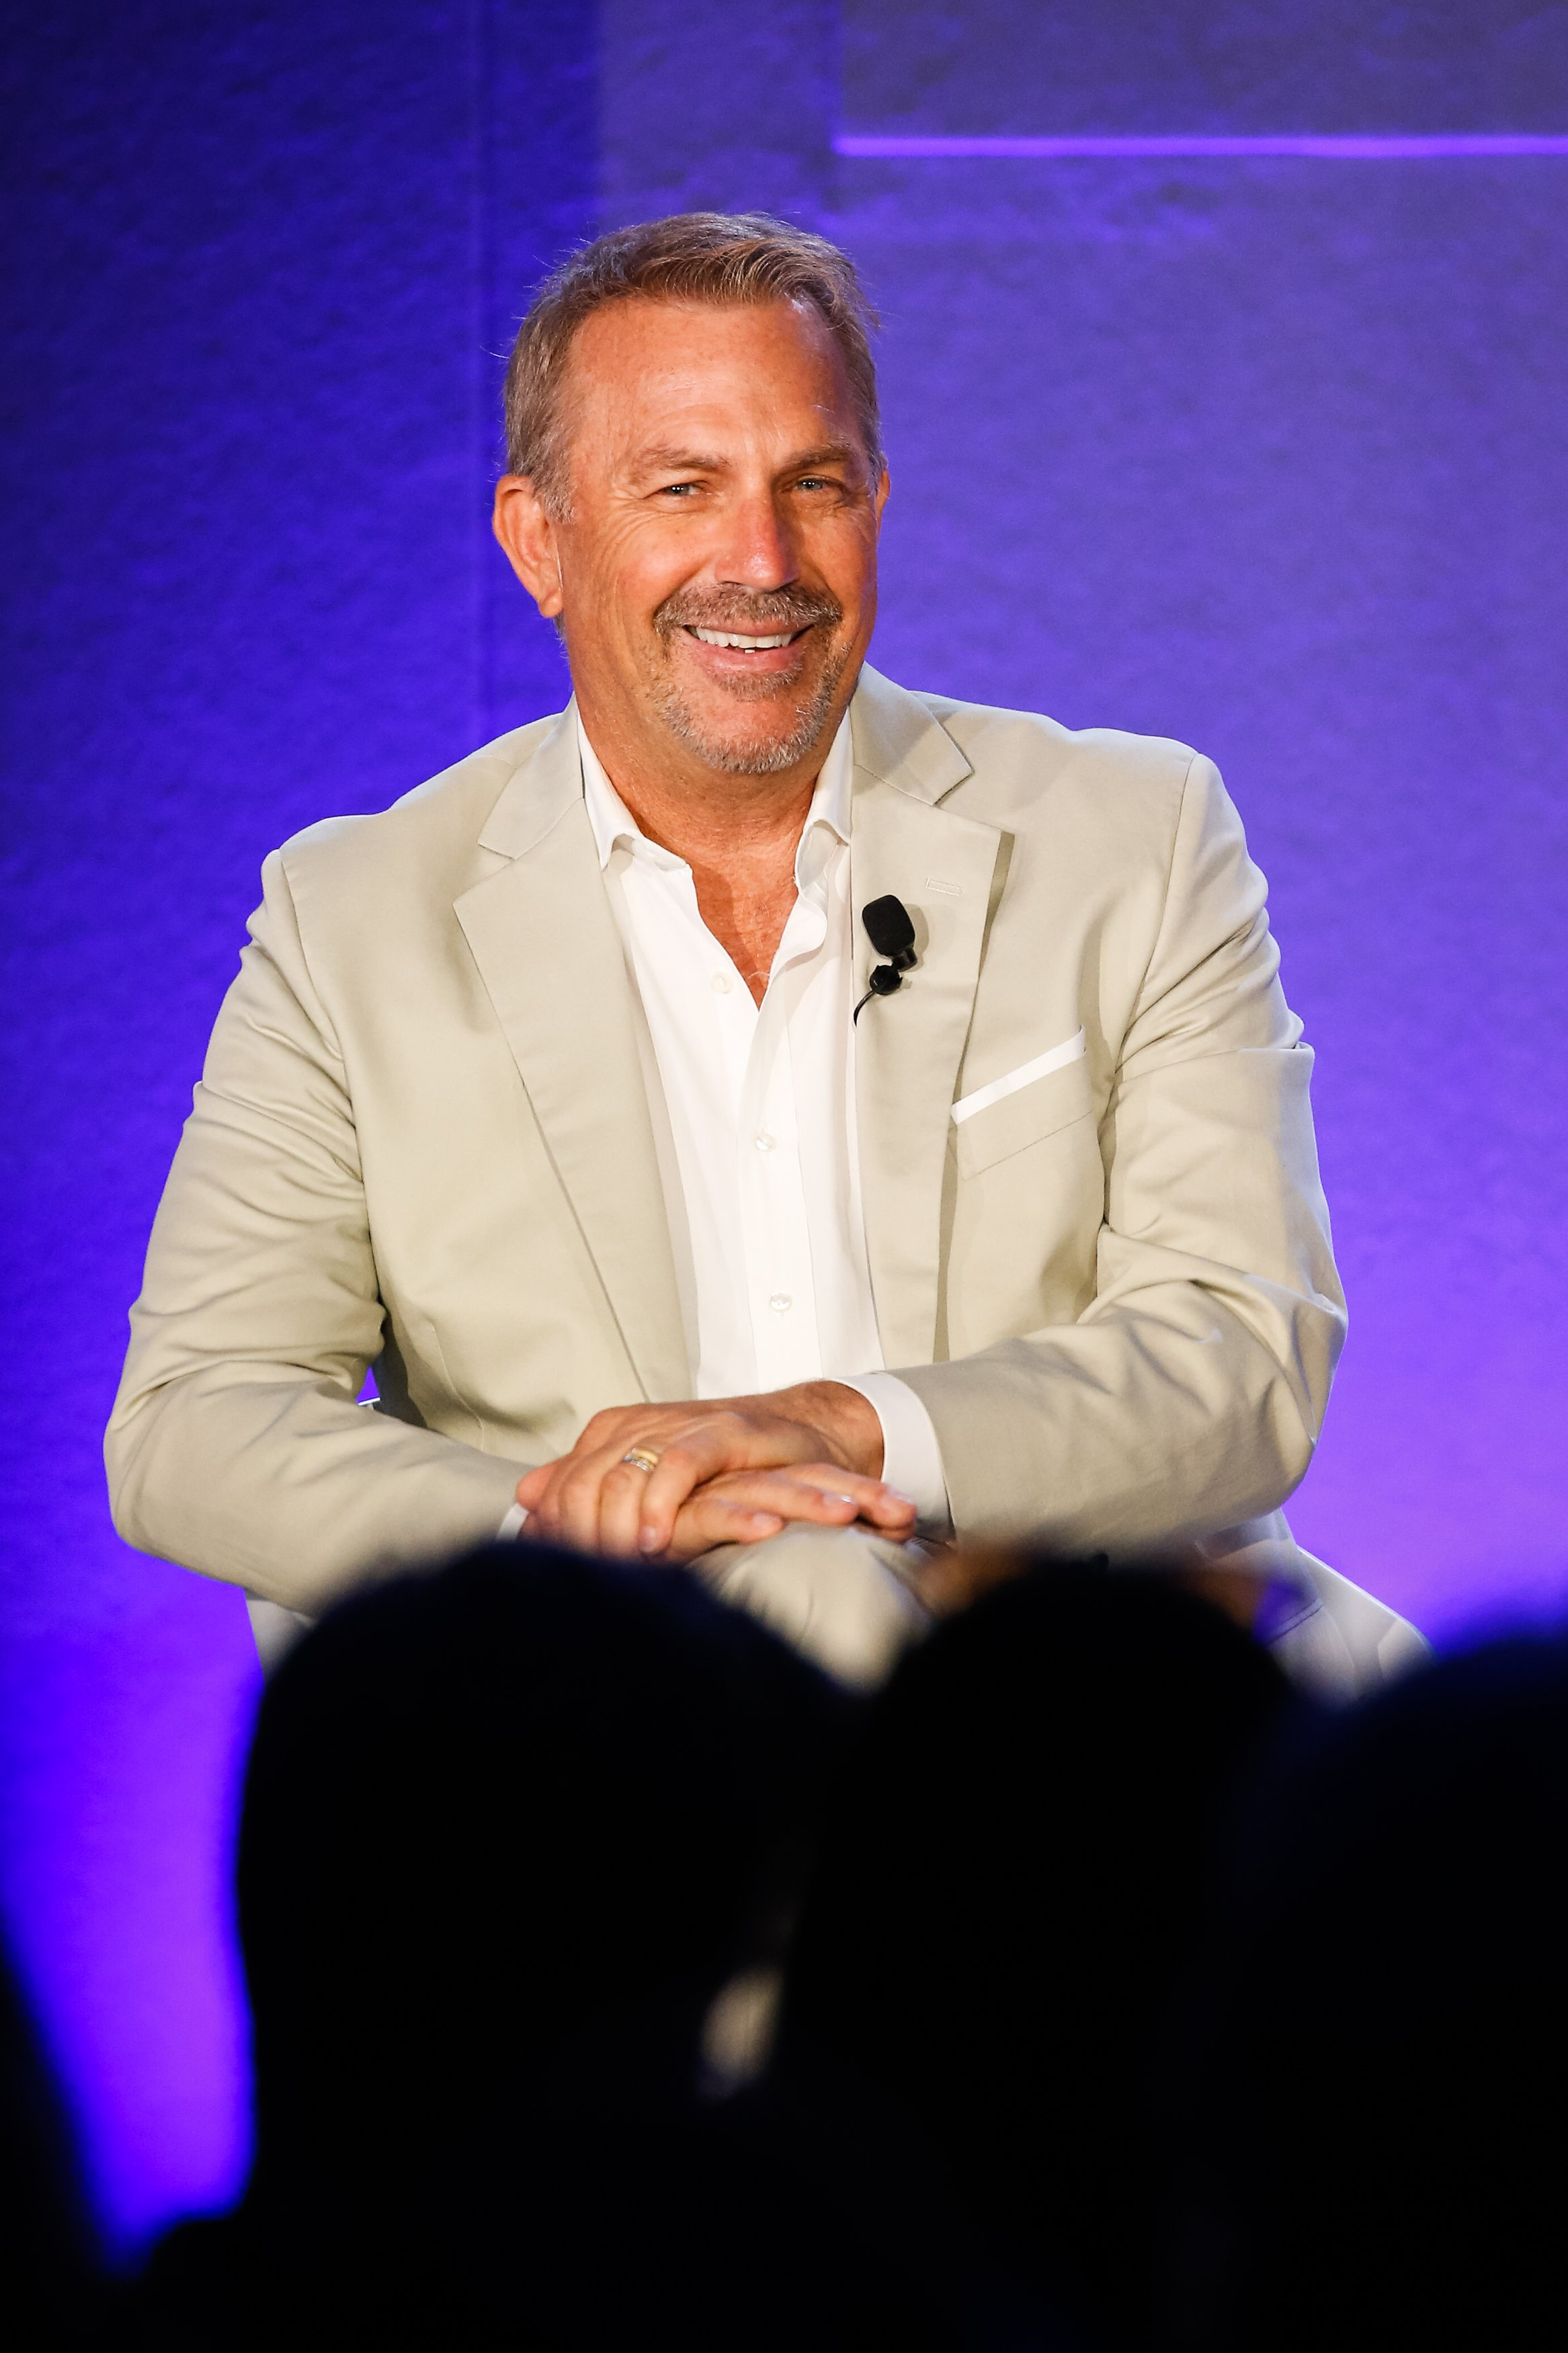 Kevin Costner speaks at the Cannes Lions Festival in France on June 21, 2018 | Photo: Getty Images